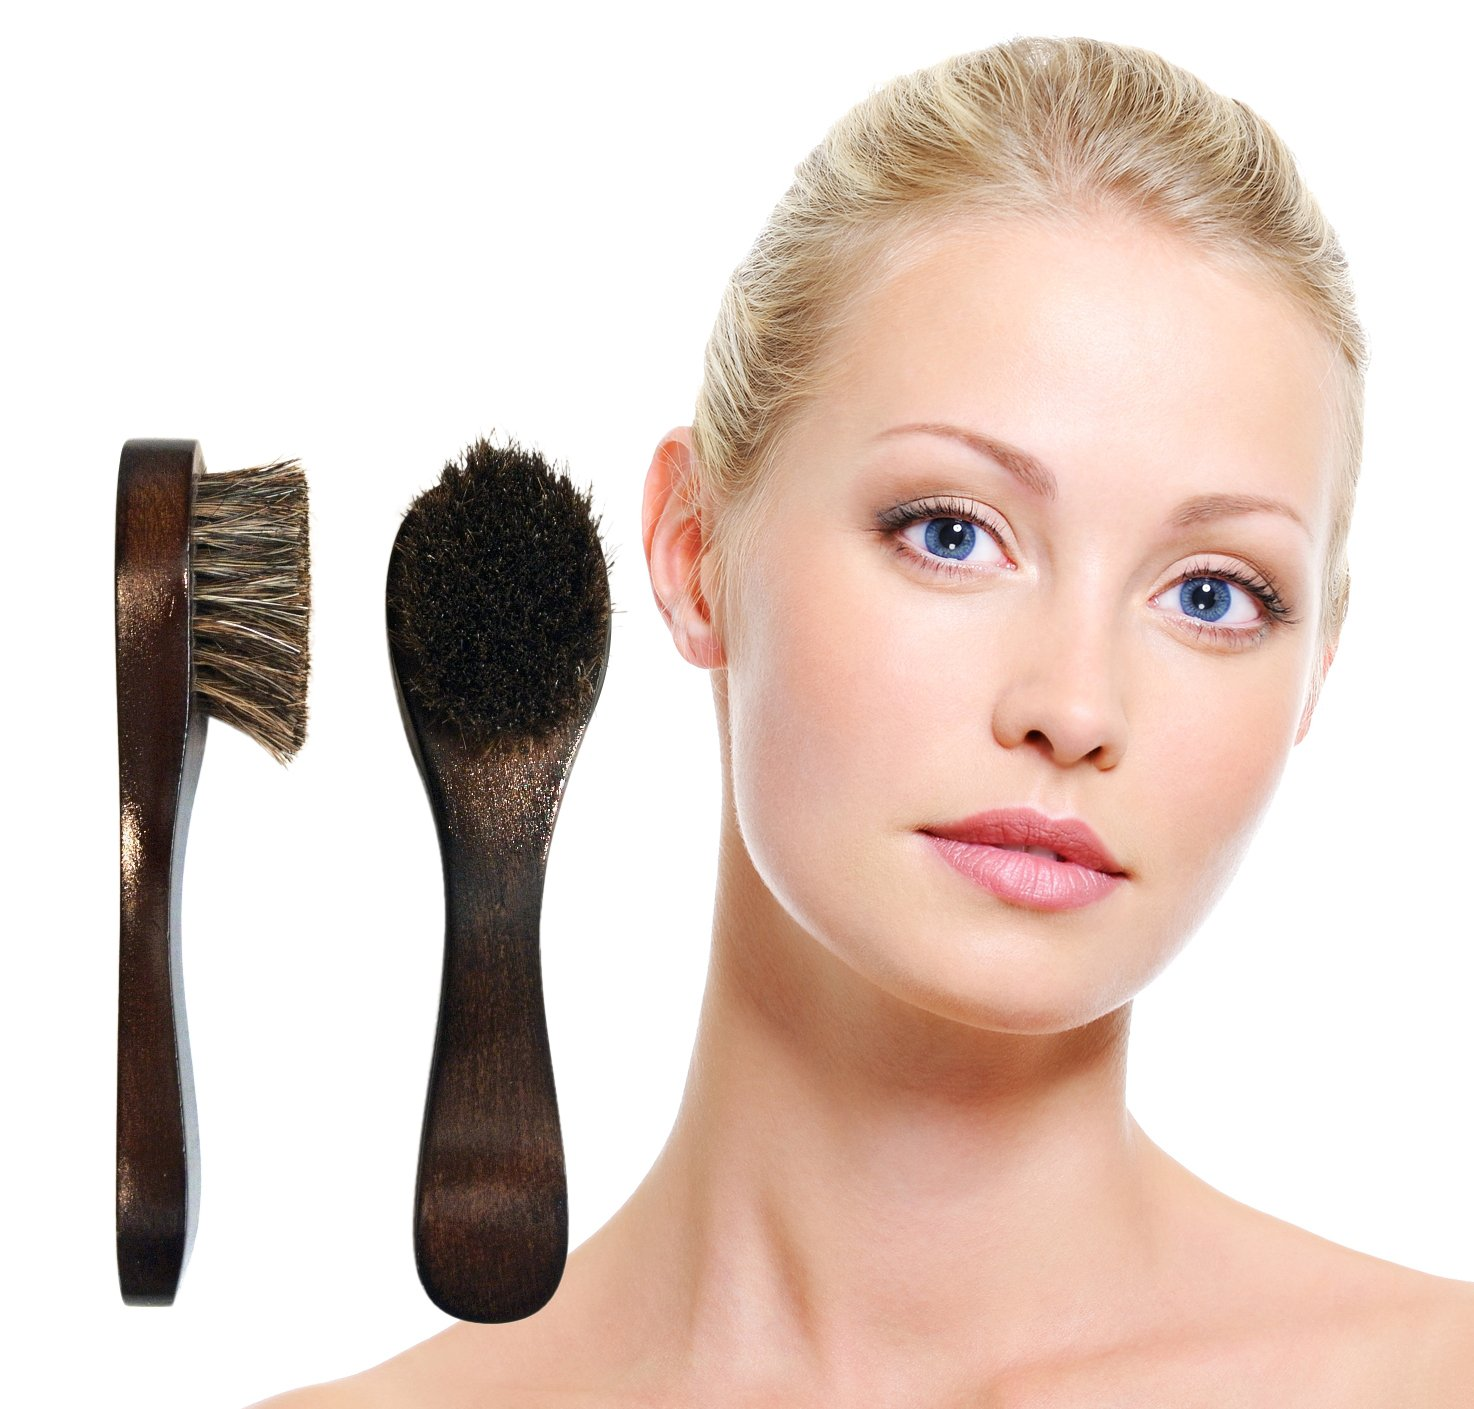 Upgraded FACIAL SKIN BRUSHES with Pouch from Sublime, 2 Pack. Now With Softer Bristles. How-To Guide Emailed. Energize Skin, Circulation & Lymphatic System. 100%.